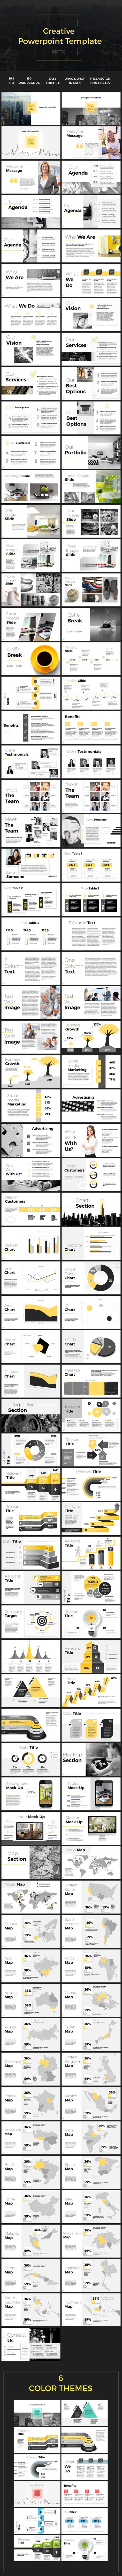 The City Creative Powerpoint Presentation Template #swot • Download ➝ https://graphicriver.net/item/the-city-creative-powerpoint-presentation-template/18060399?ref=pxcr